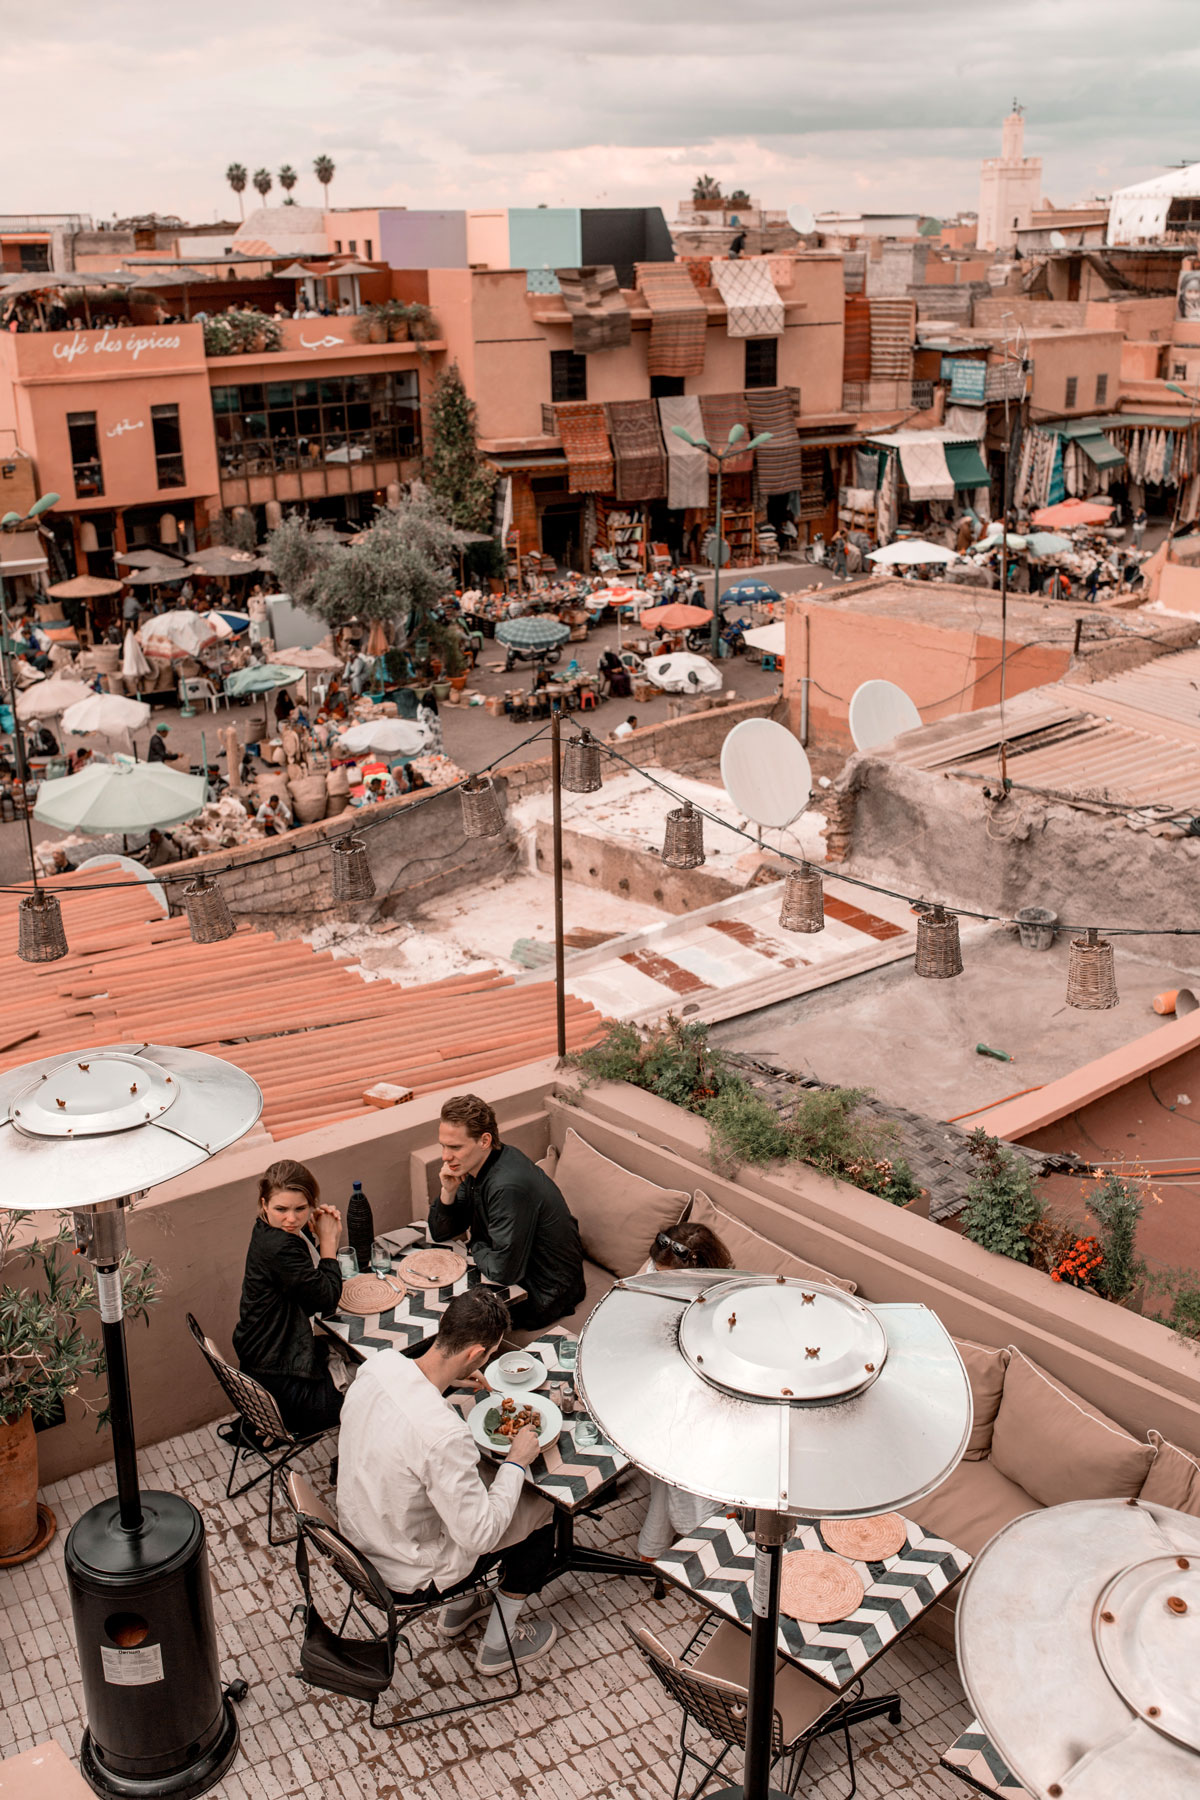 Top-things-to-do-in-marrakech-Bucket-list-kelseyinlondon-Kelsey-Heinrichs--What-to-do-in-marrakech--Where-to-go-in-marrakech-top-places-in-marrakech-Cafe-Nomad